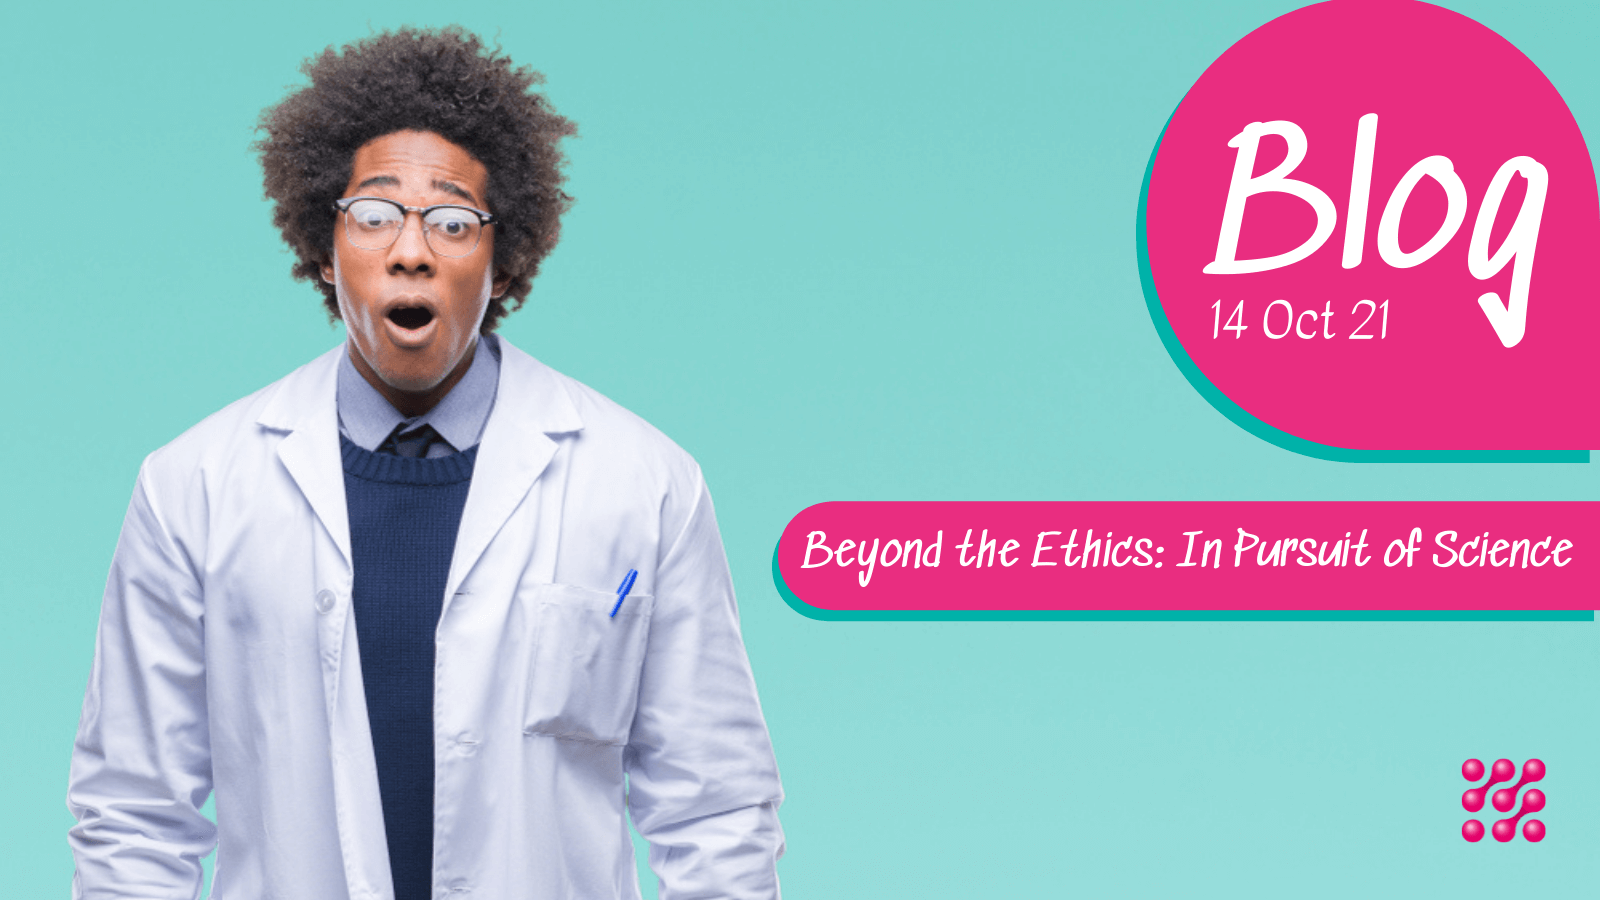 Beyond the Ethics: In Pursuit of Science